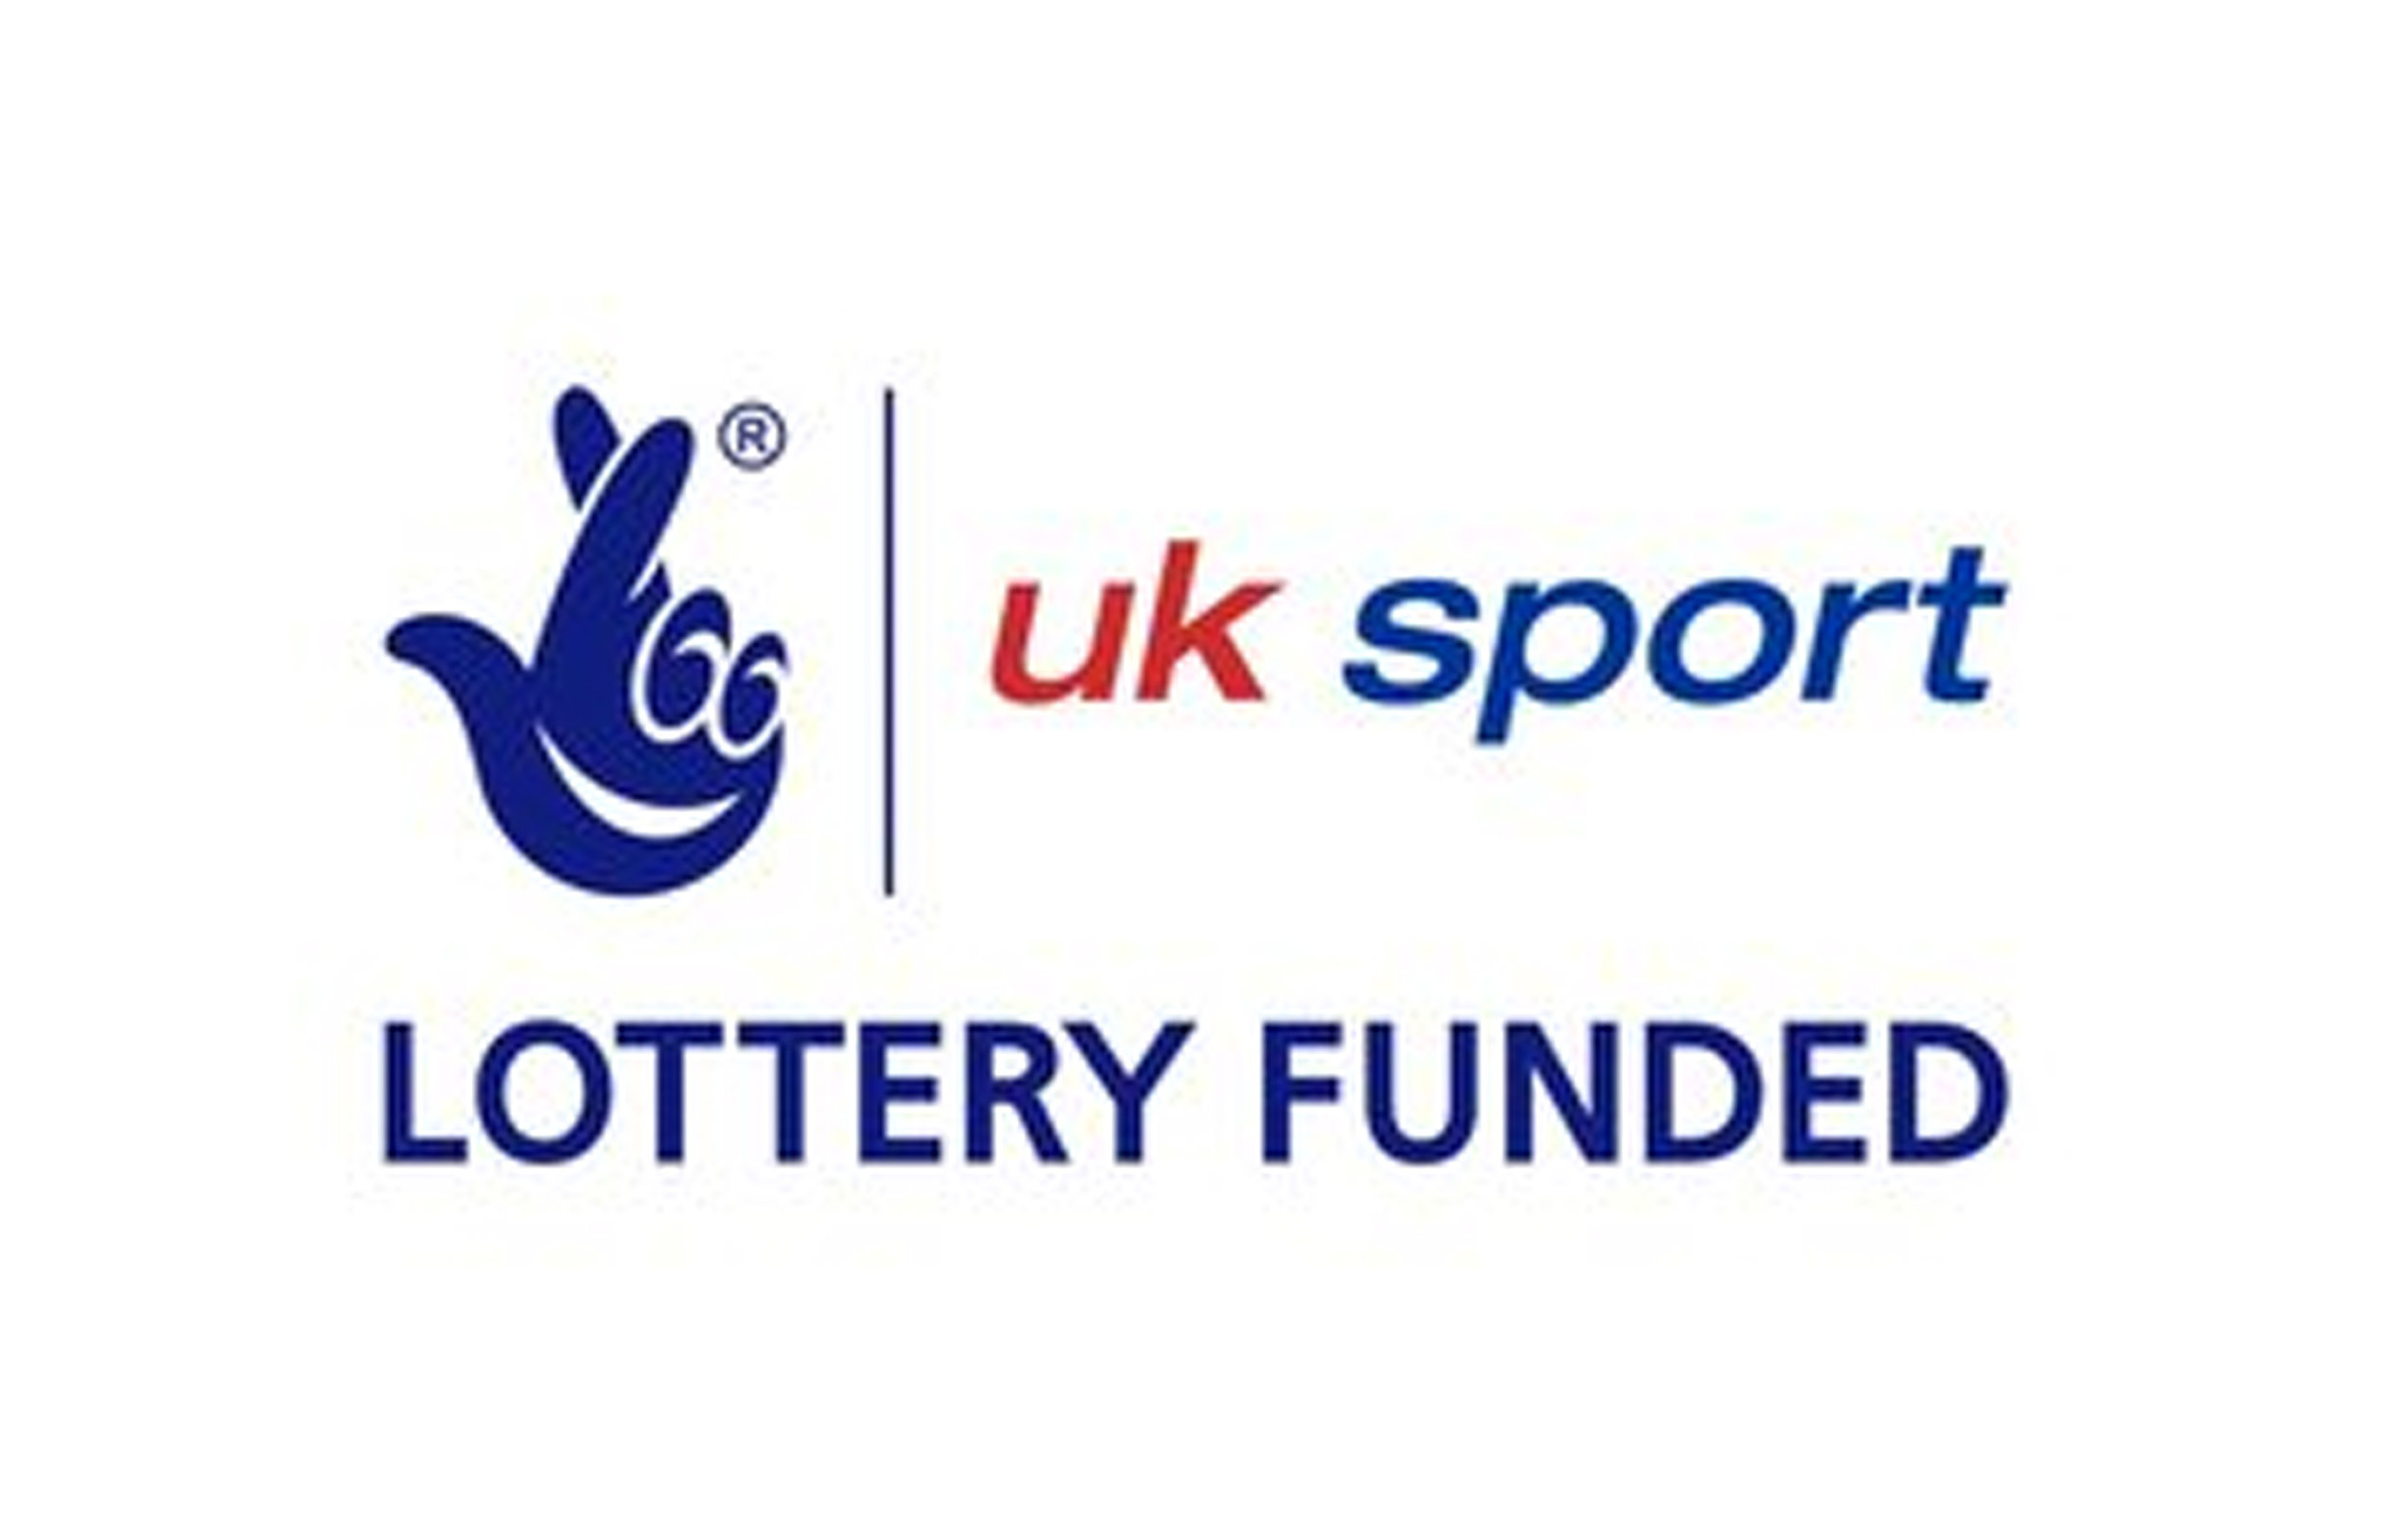 UK sport lottery logo.jpg